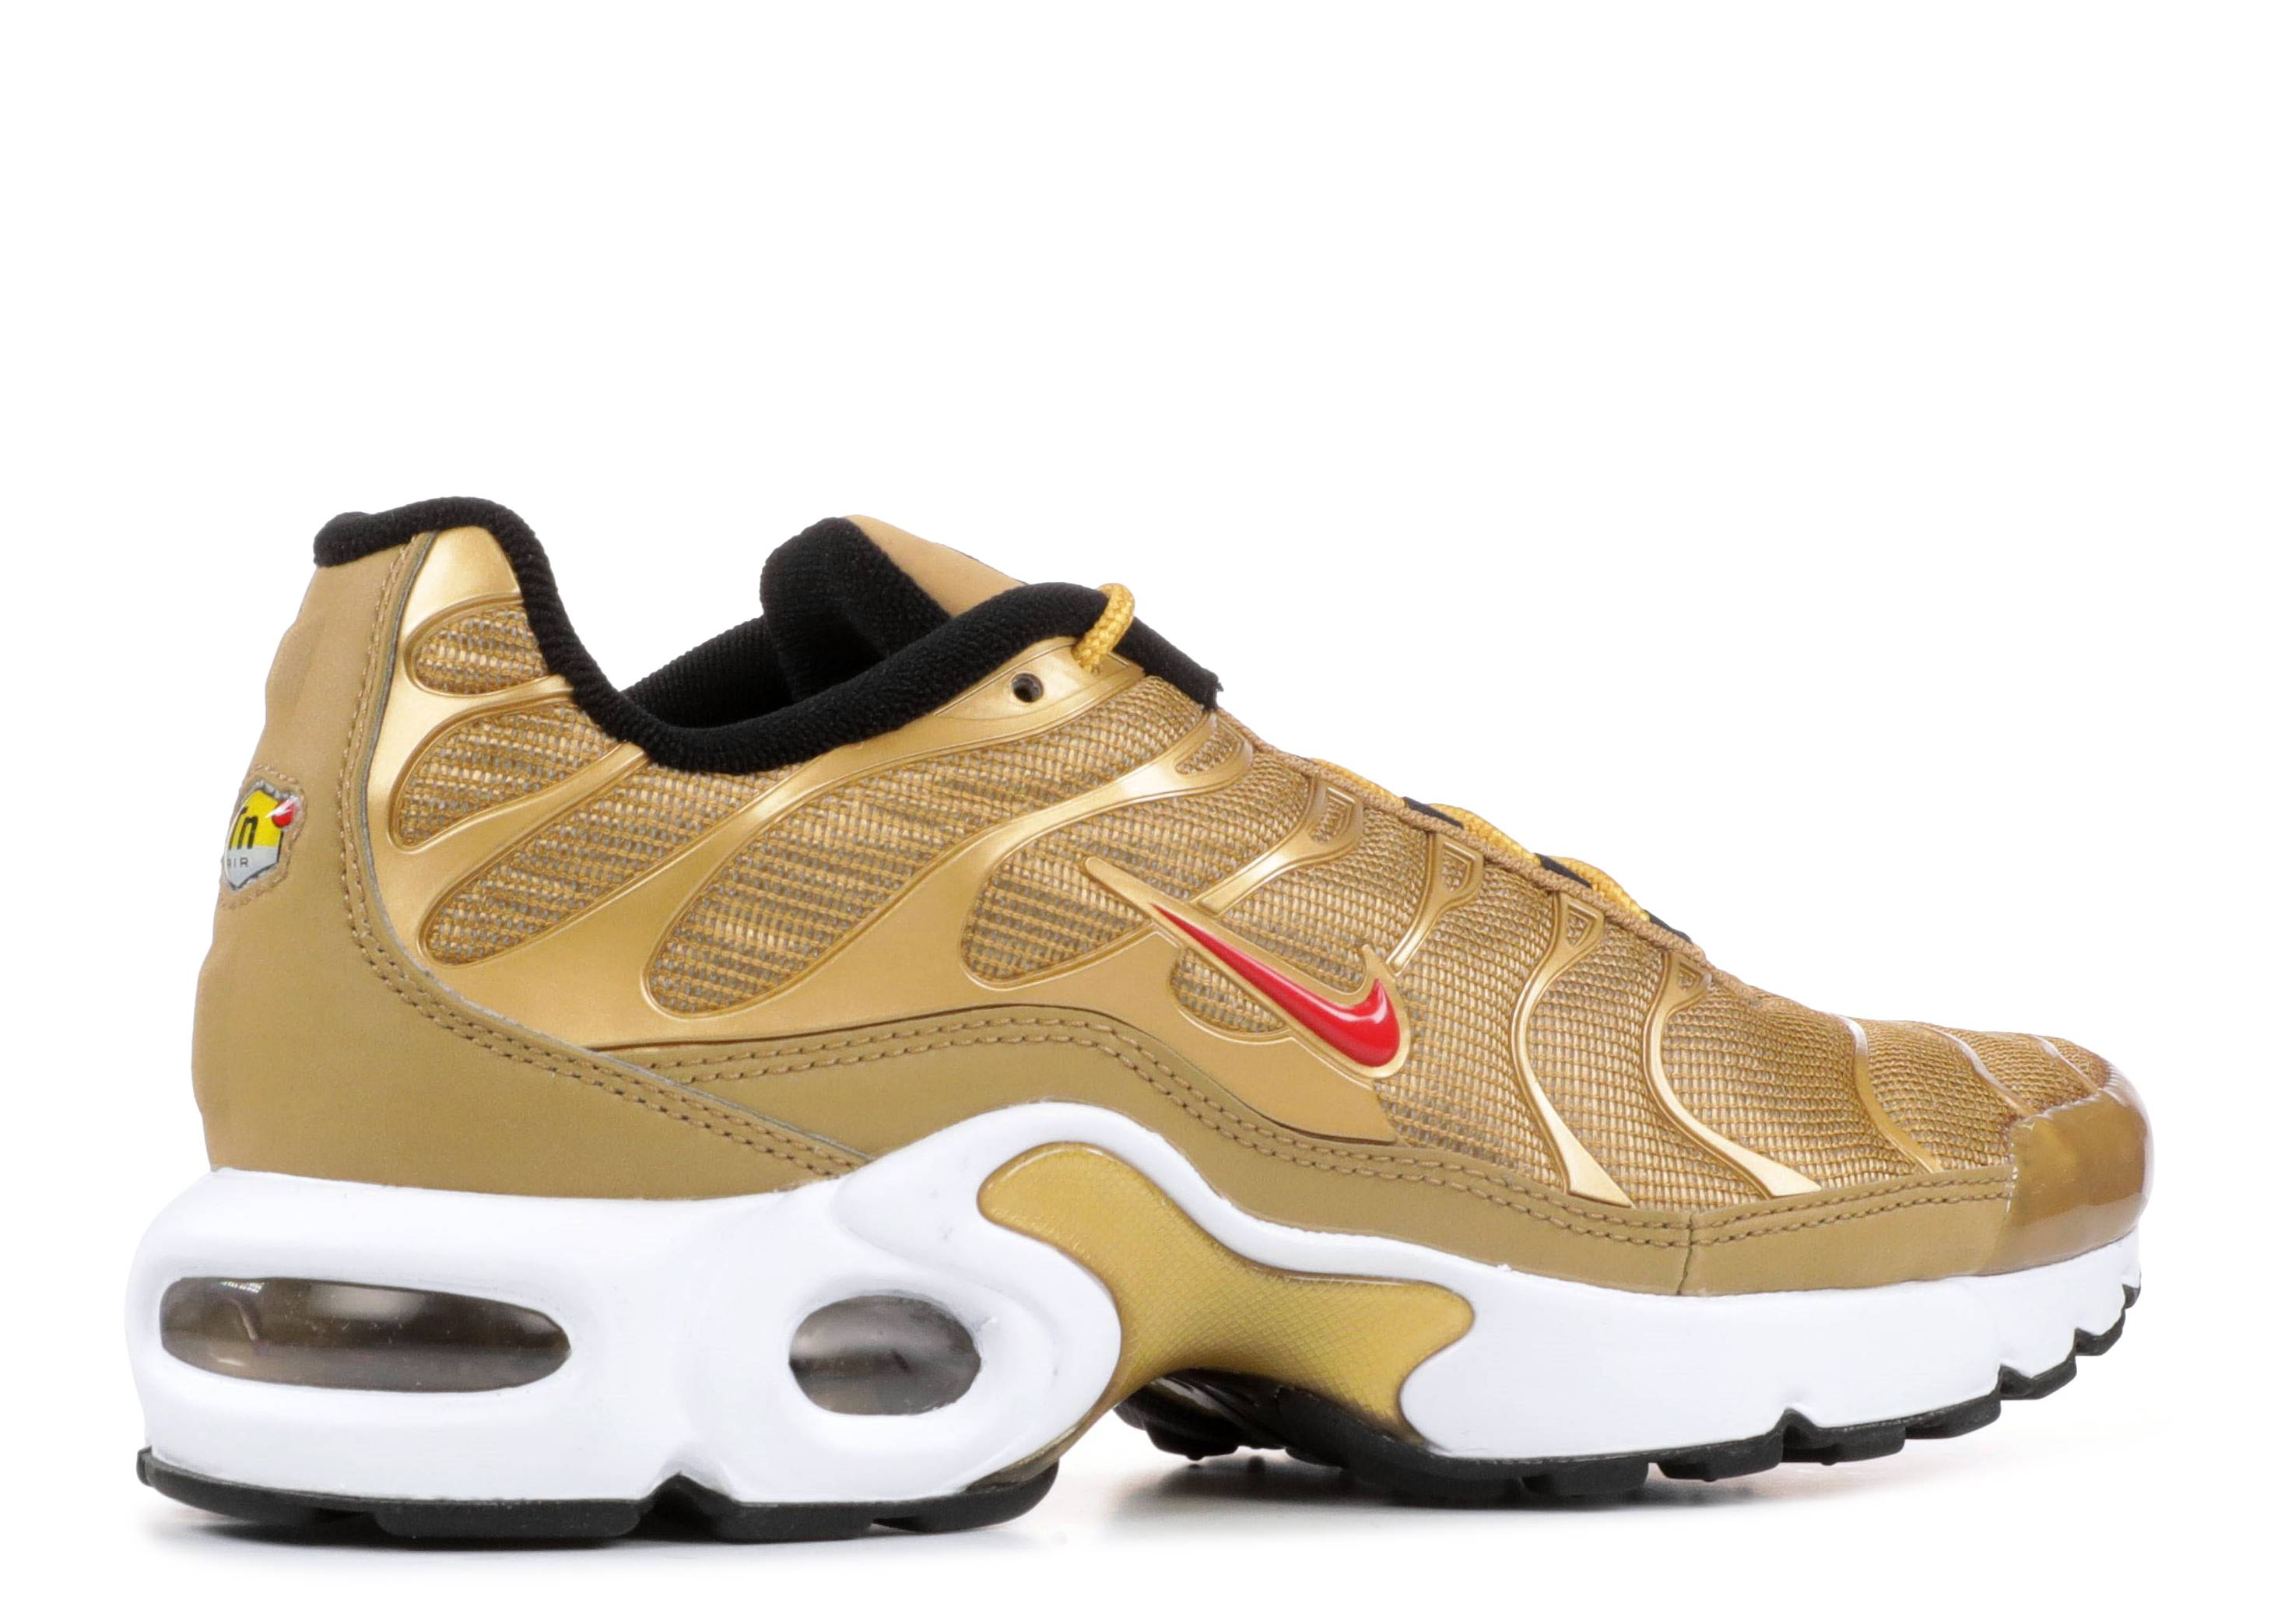 super specials in stock details for Air Max Plus TN SE BG